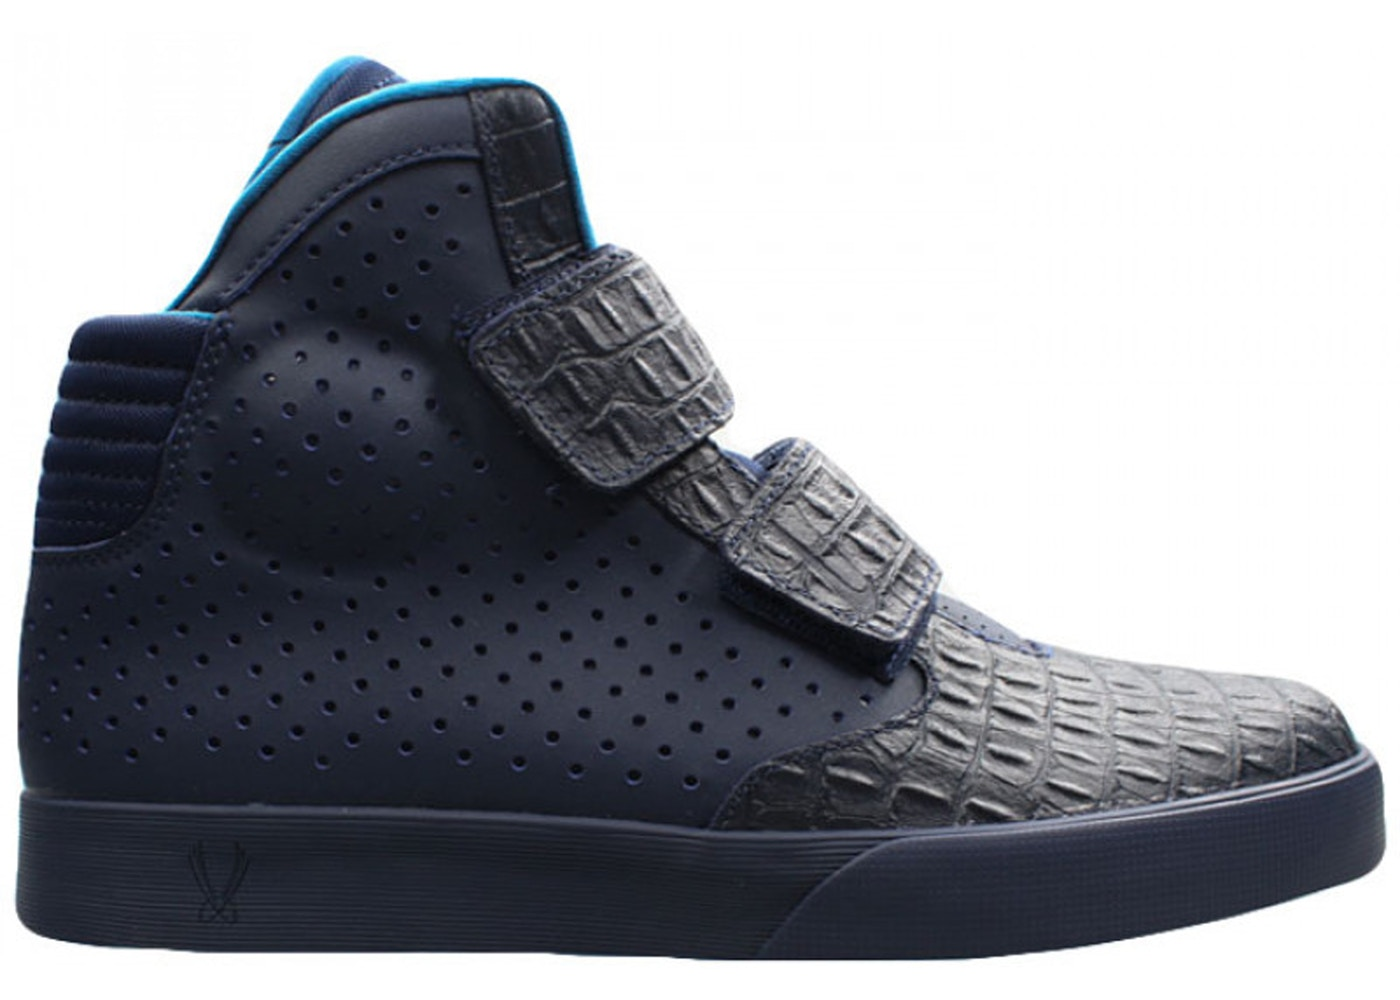 new products 83c3d 4aa73 Nike Flystepper 2K3 Midnight Navy - 677473-444